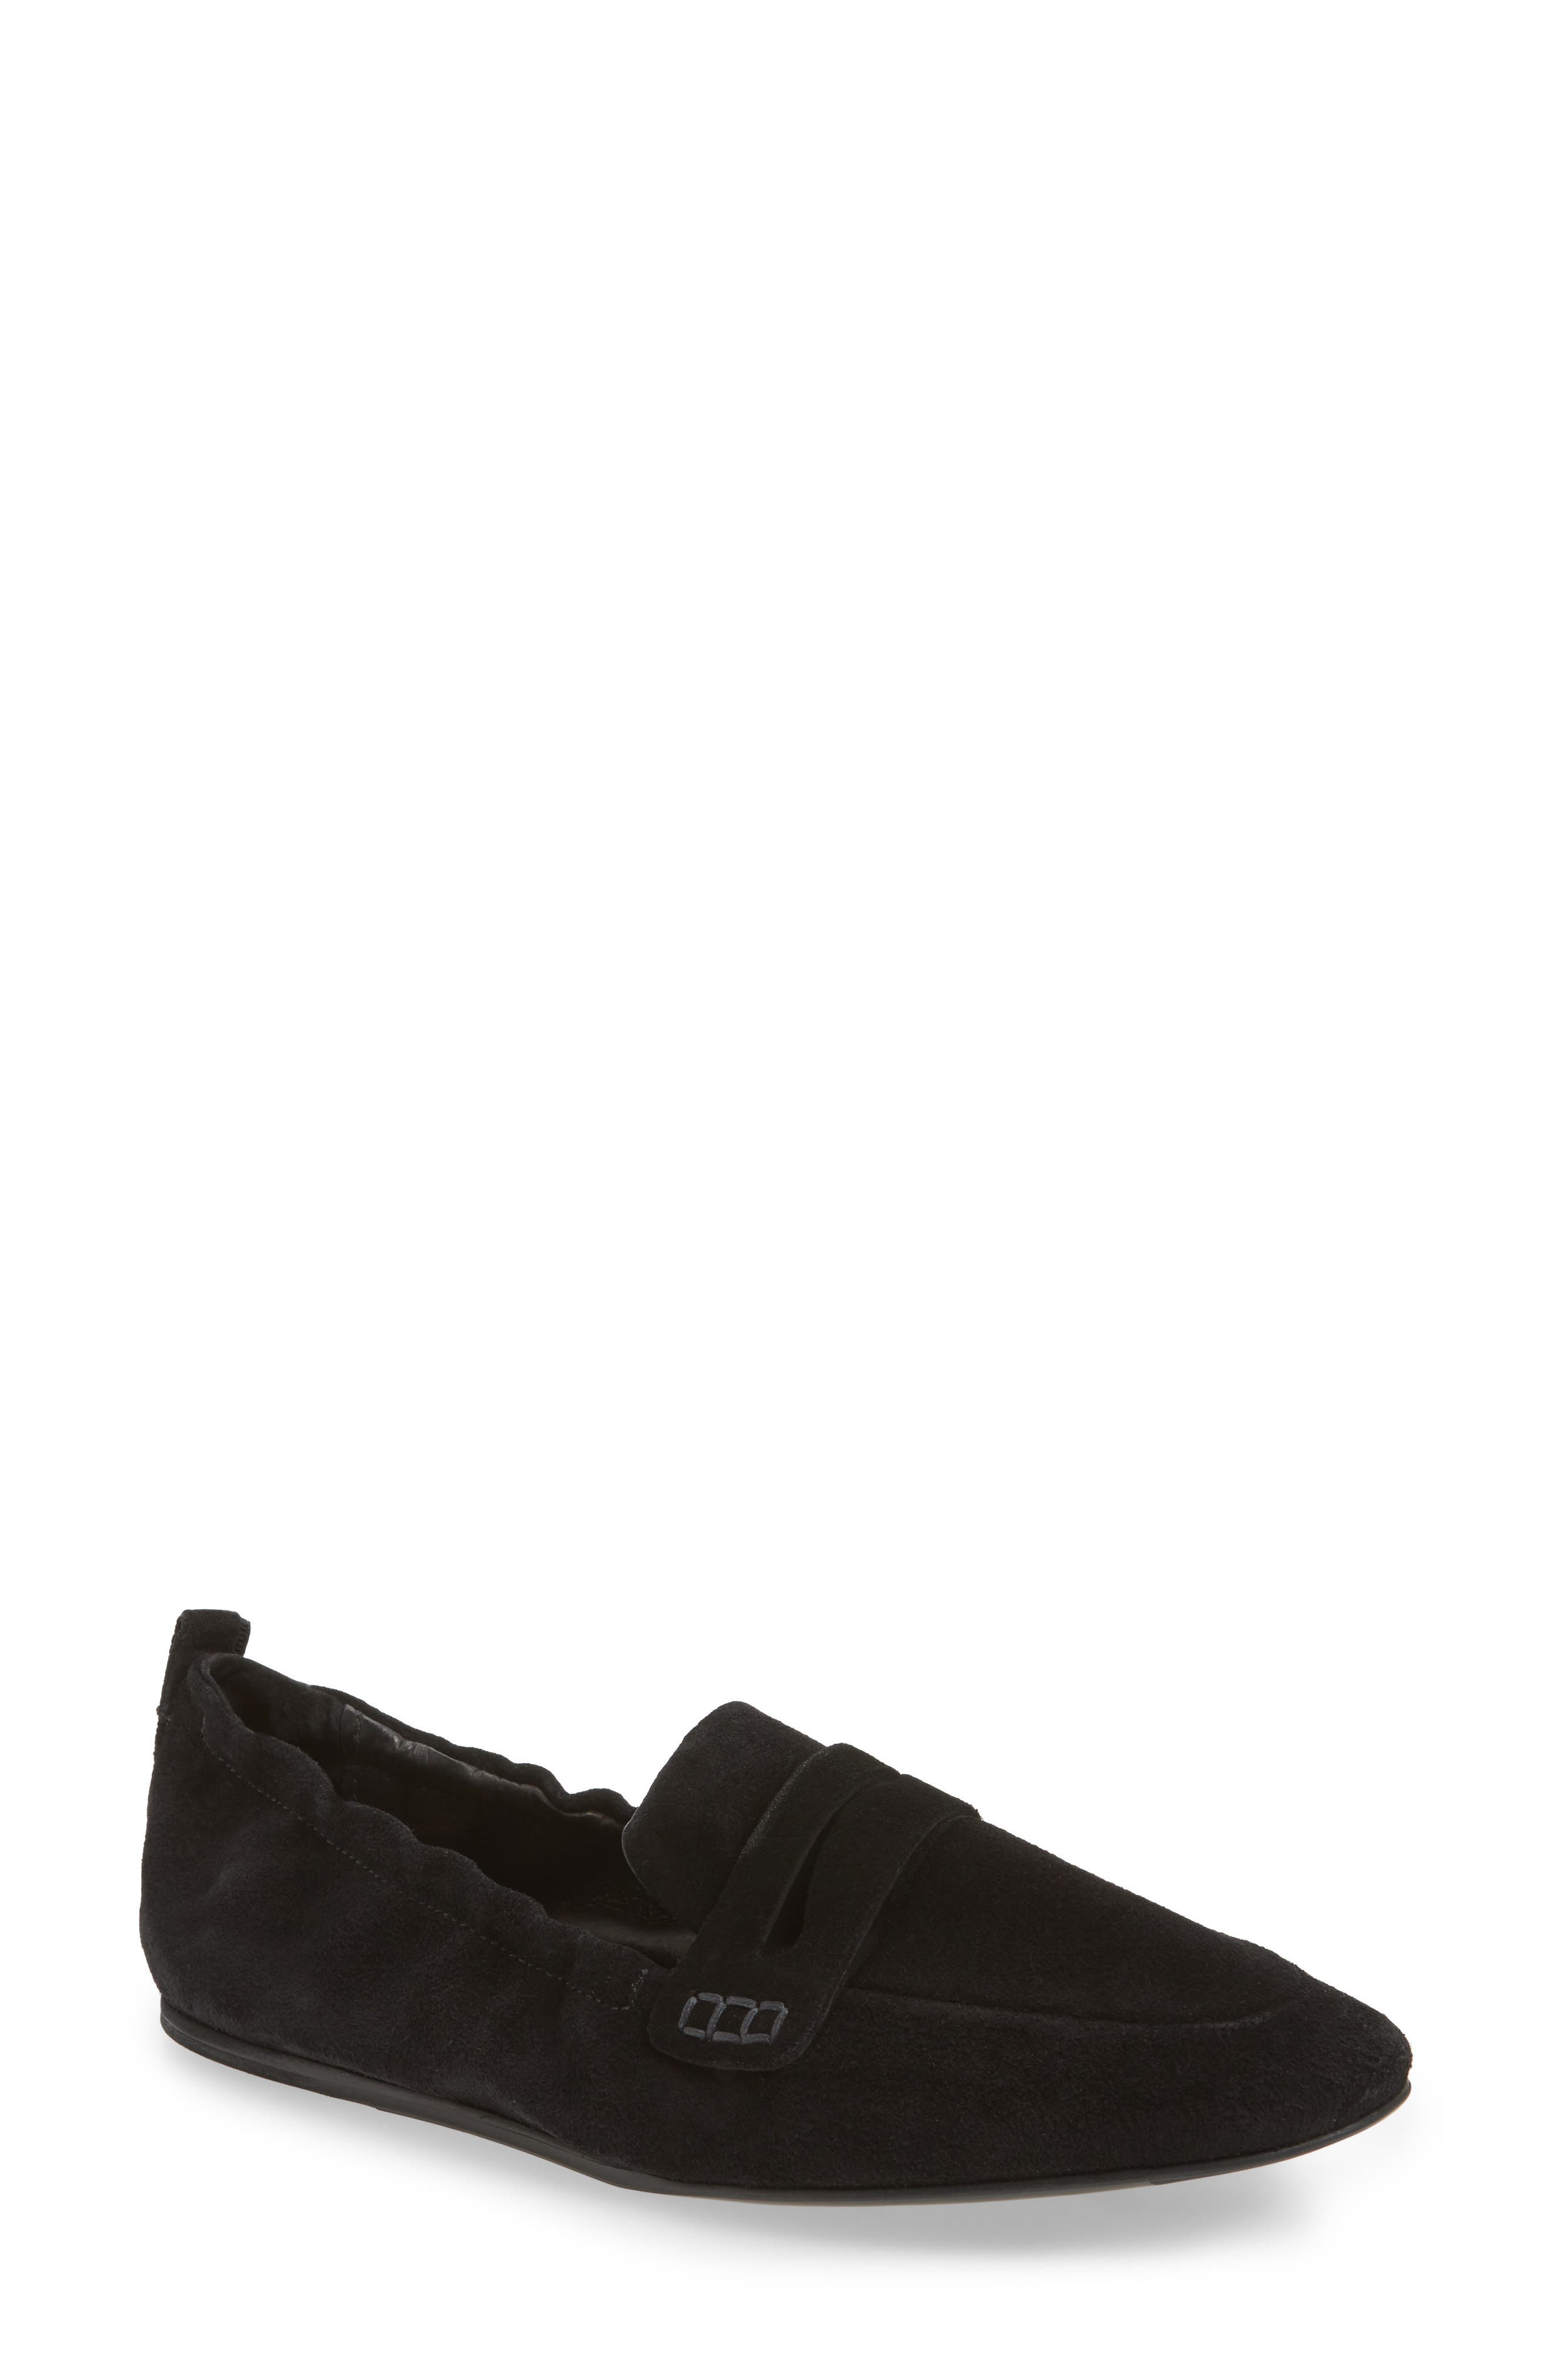 Milly Elastic Loafer Flat,                         Main,                         color, Black Suede